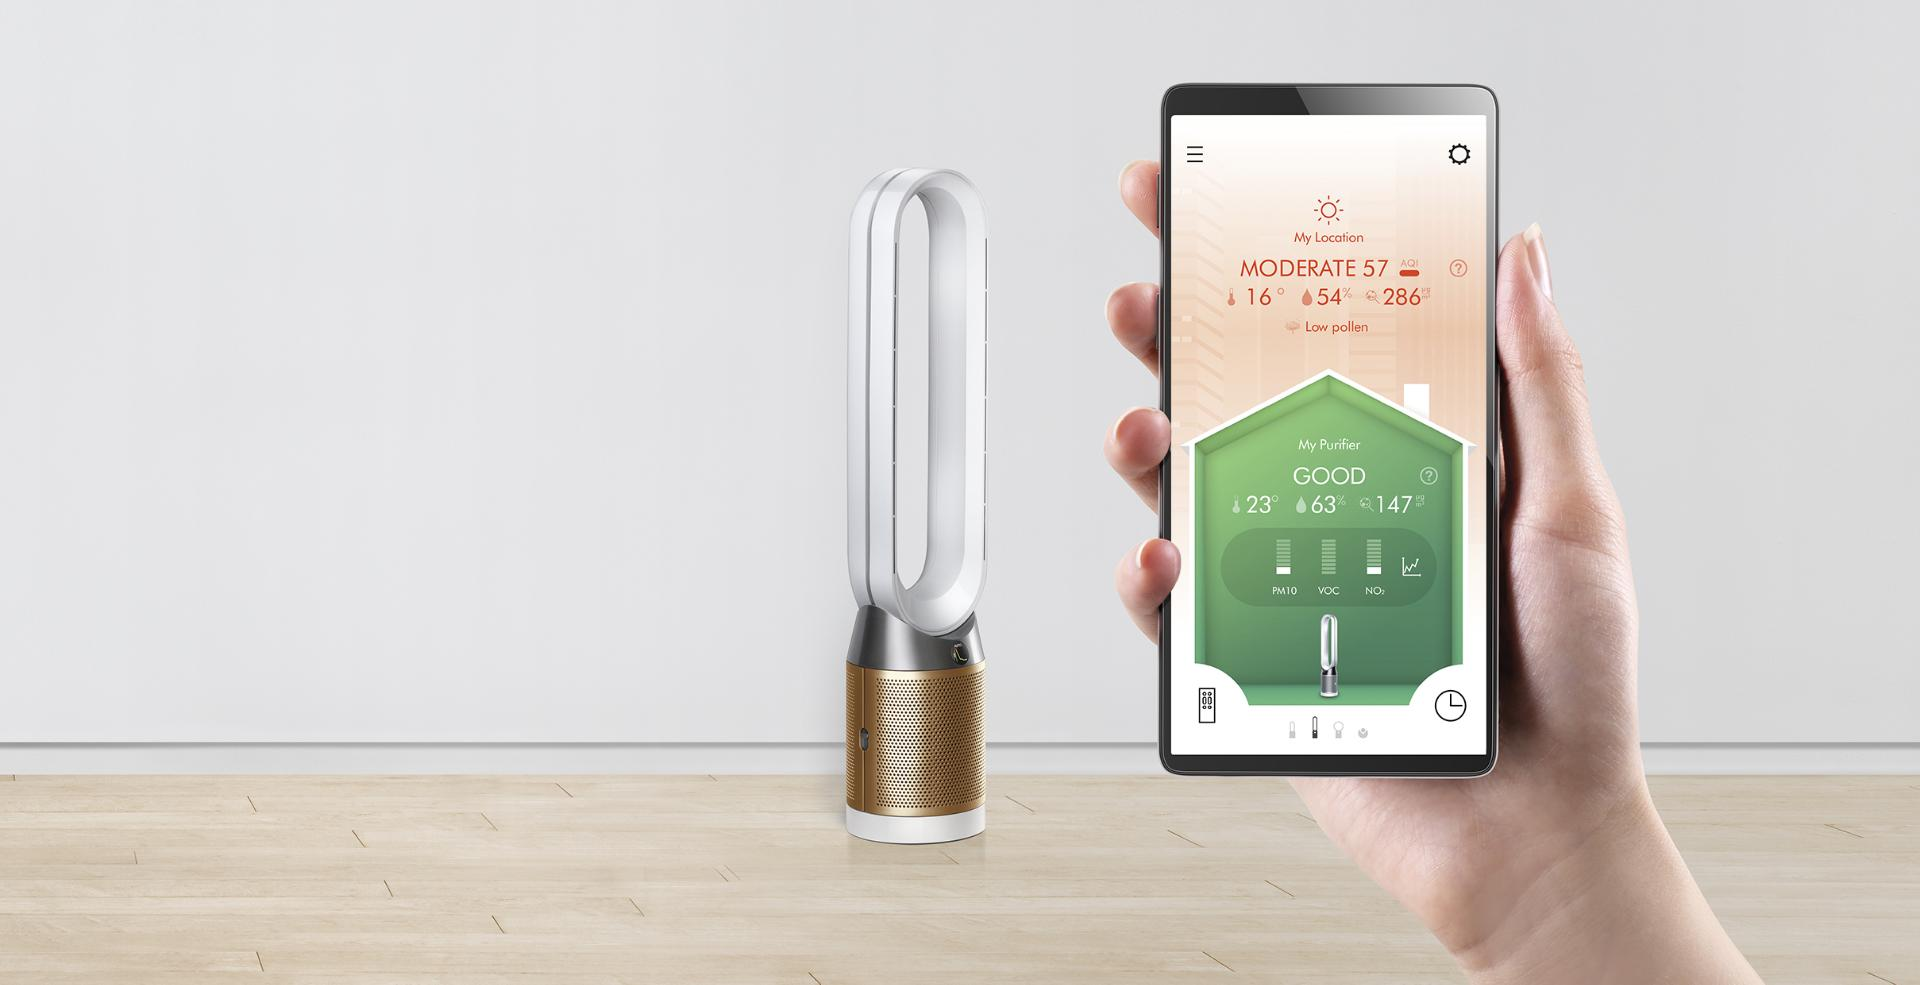 A person using the Dyson Link app to remotely control their purifier fan.